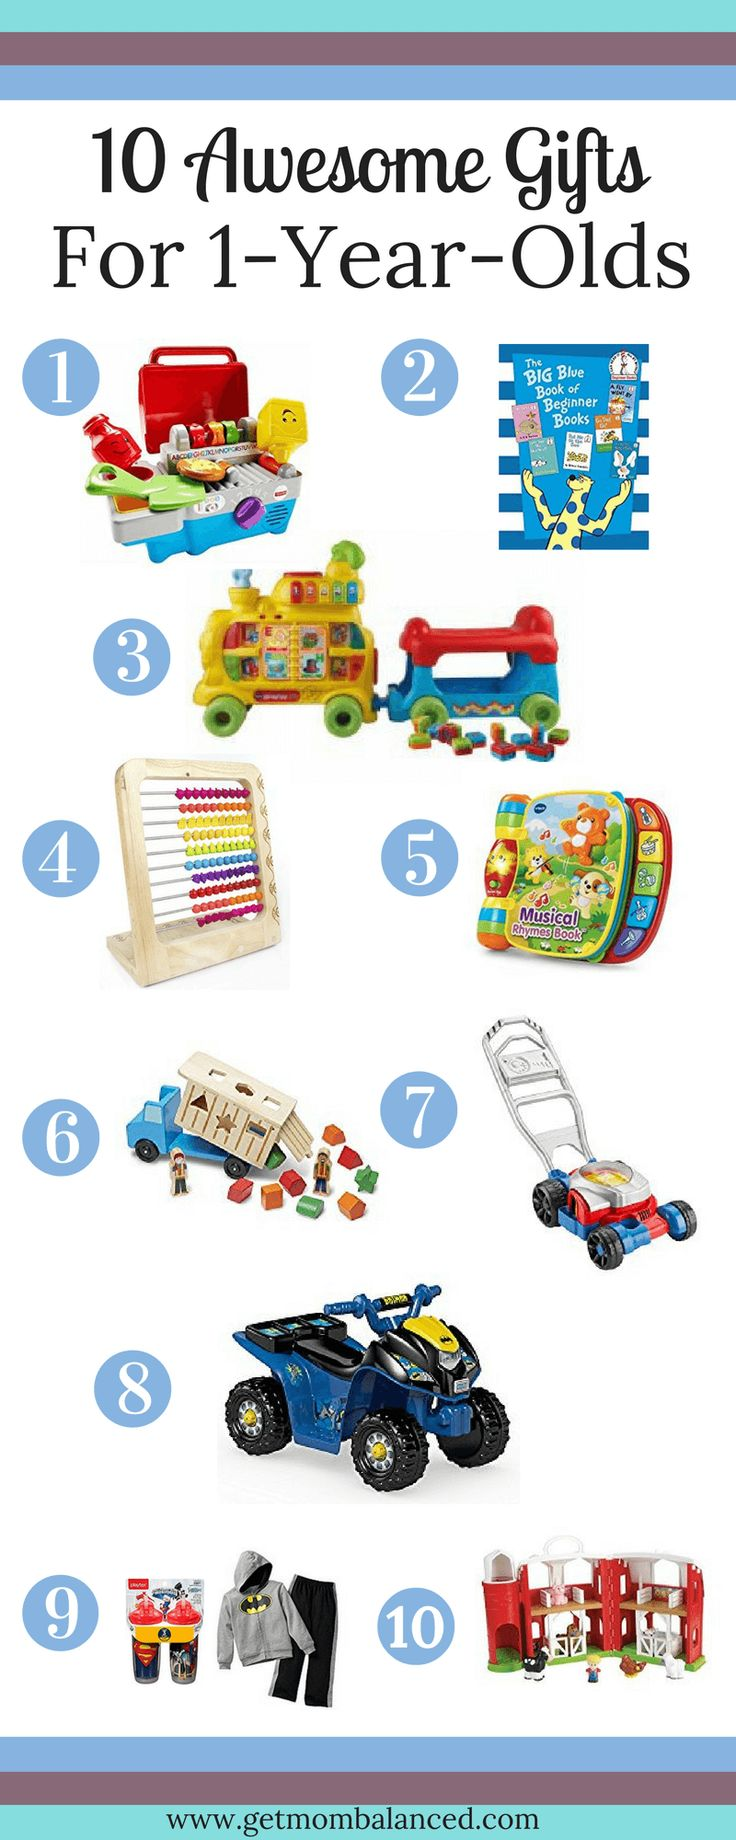 Baby Gift For 1 Year Old Boy : Images about best toys for year old girls on